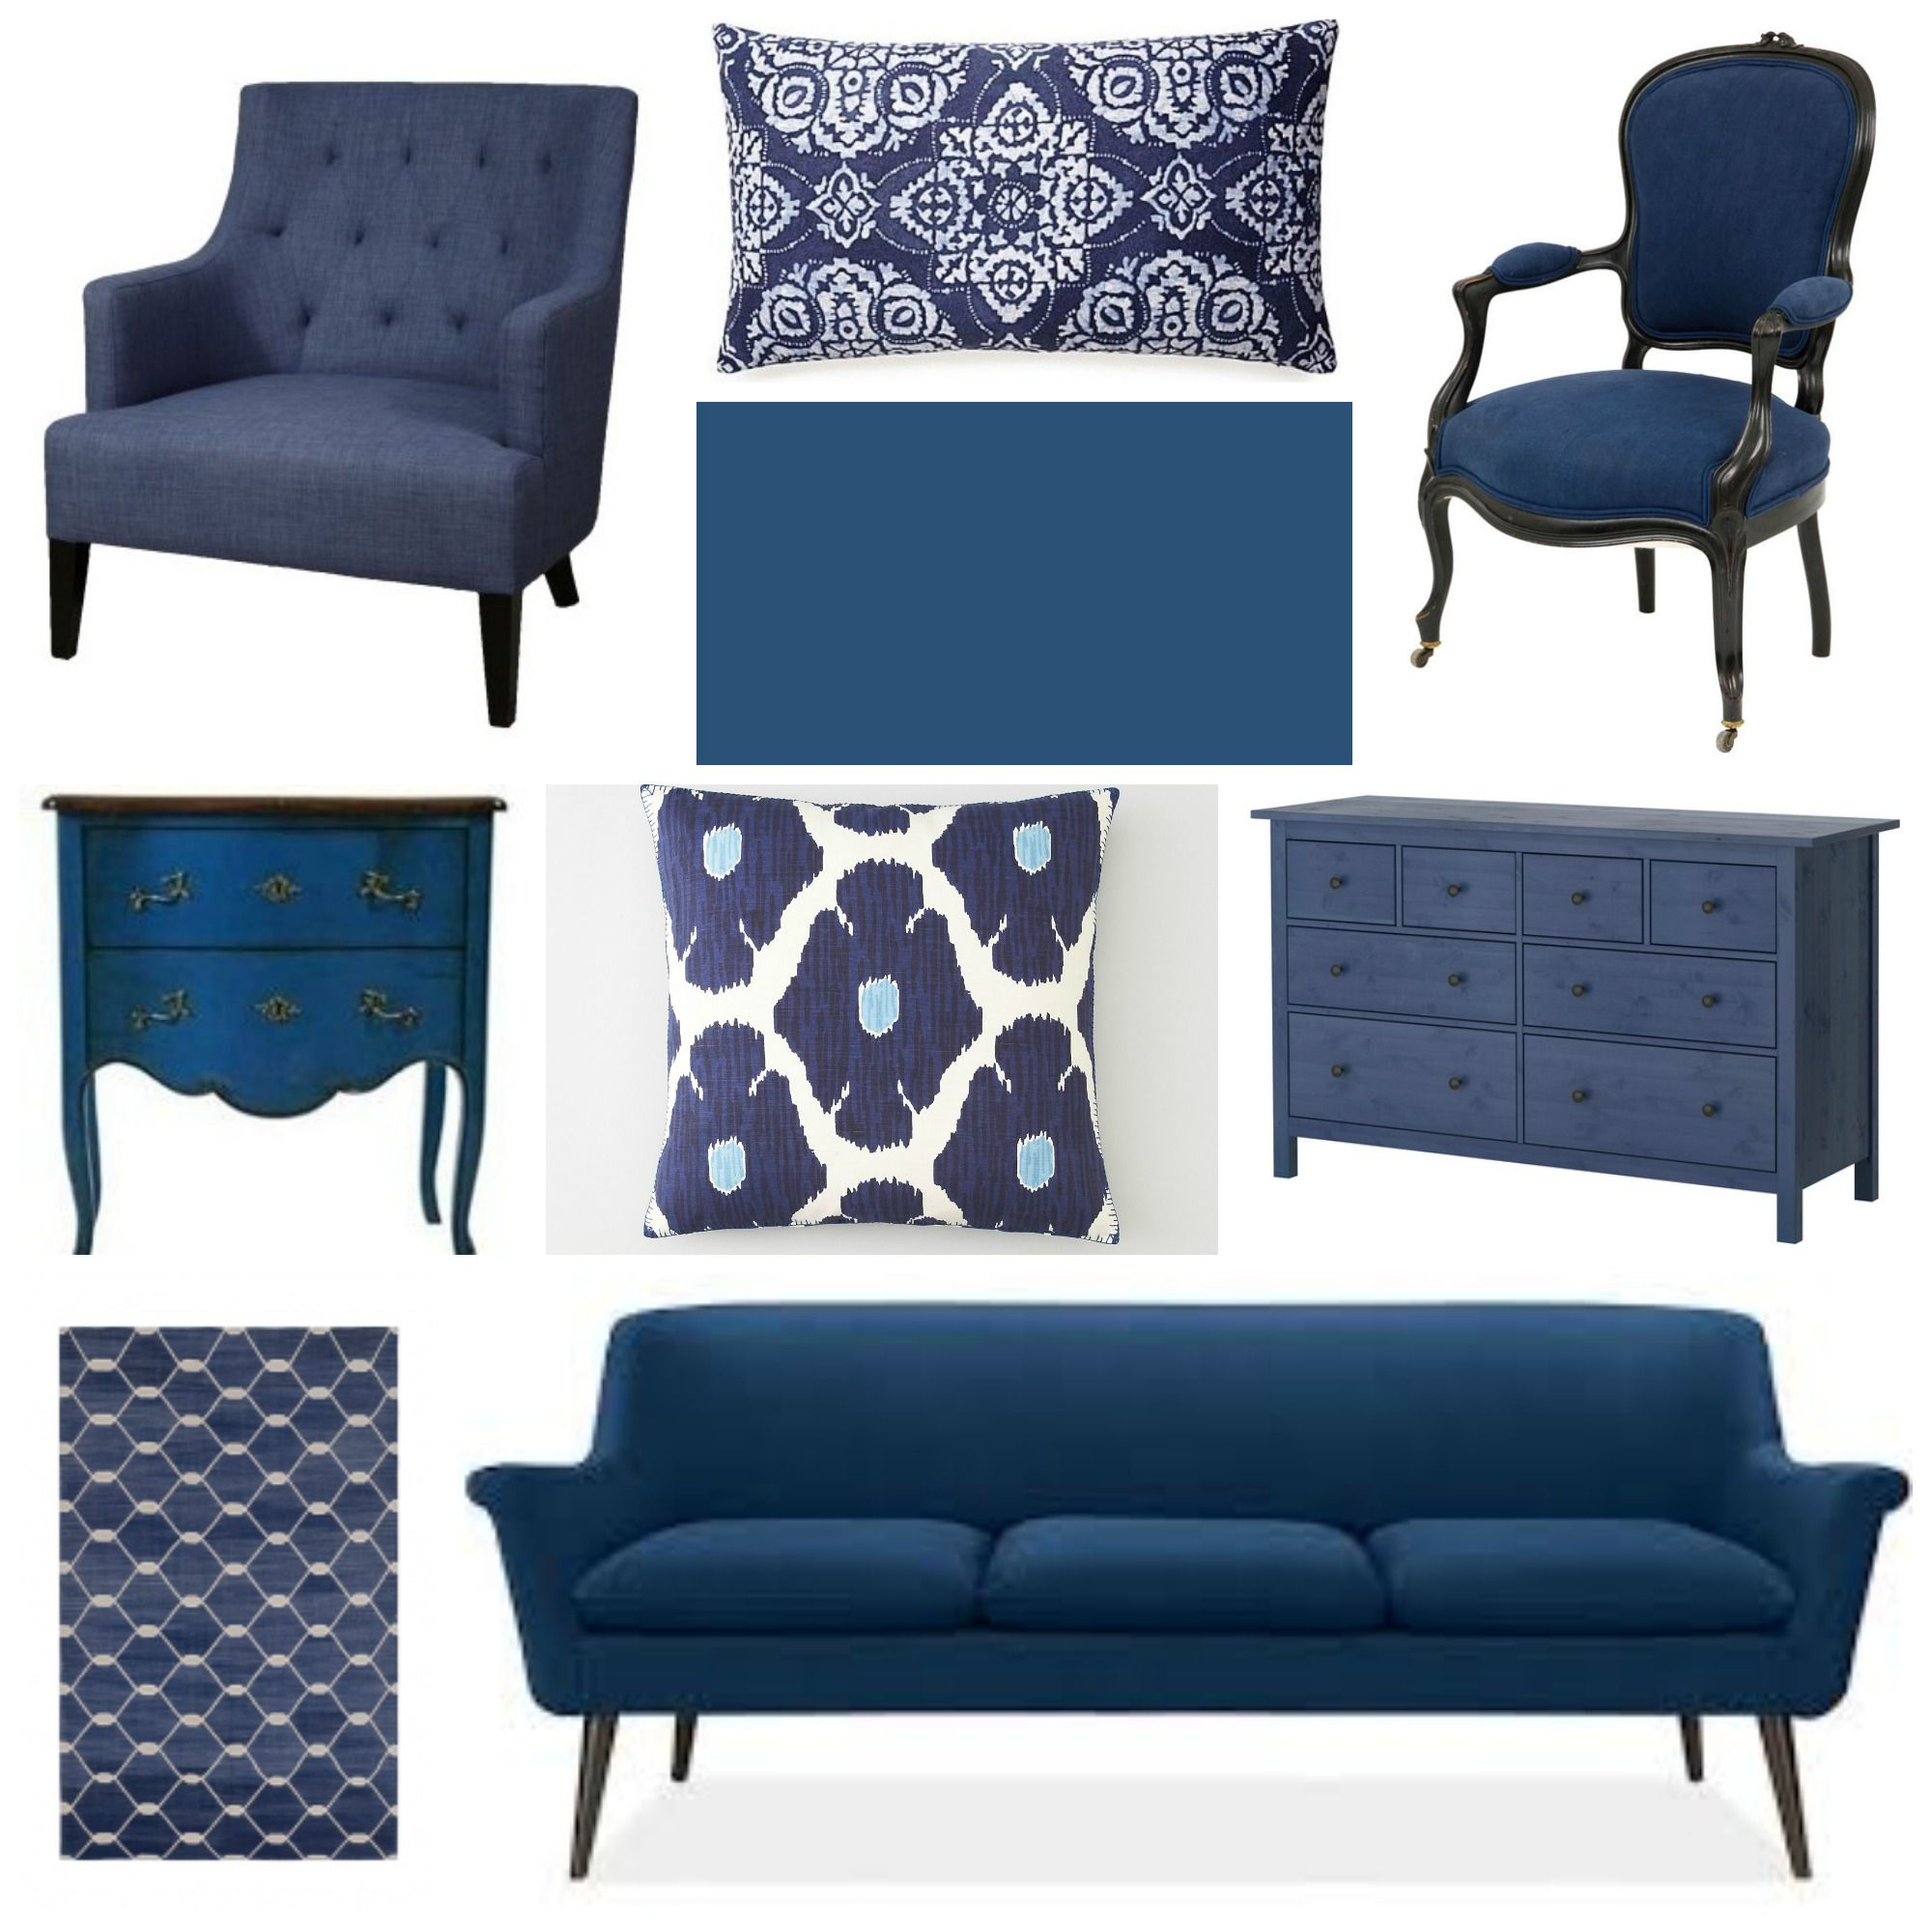 affordable chairs in charlie blue wing chair armchairs dubai quality furniture luxury